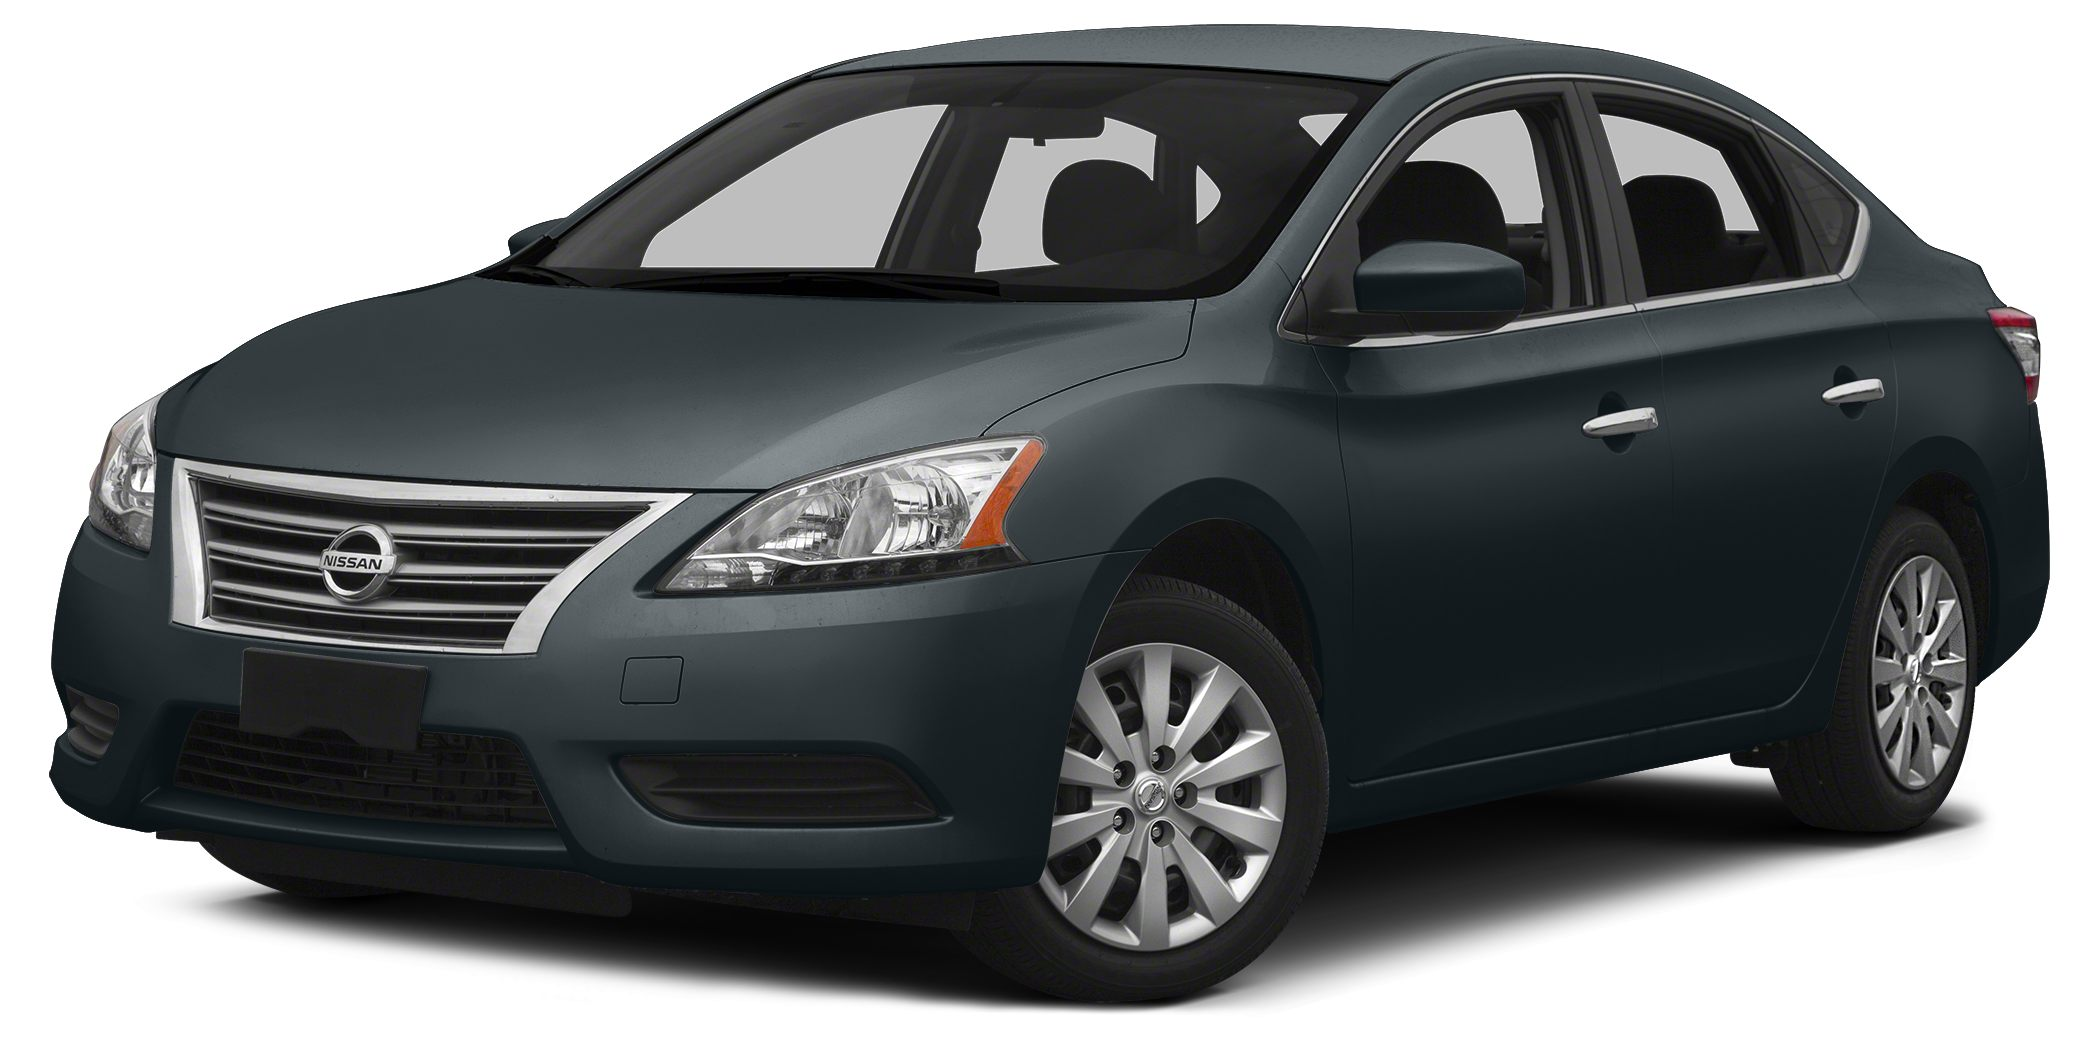 2014 Nissan Sentra S Miles 32605Color Graphite Blue Stock F15S807A VIN 3N1AB7AP0EY253158